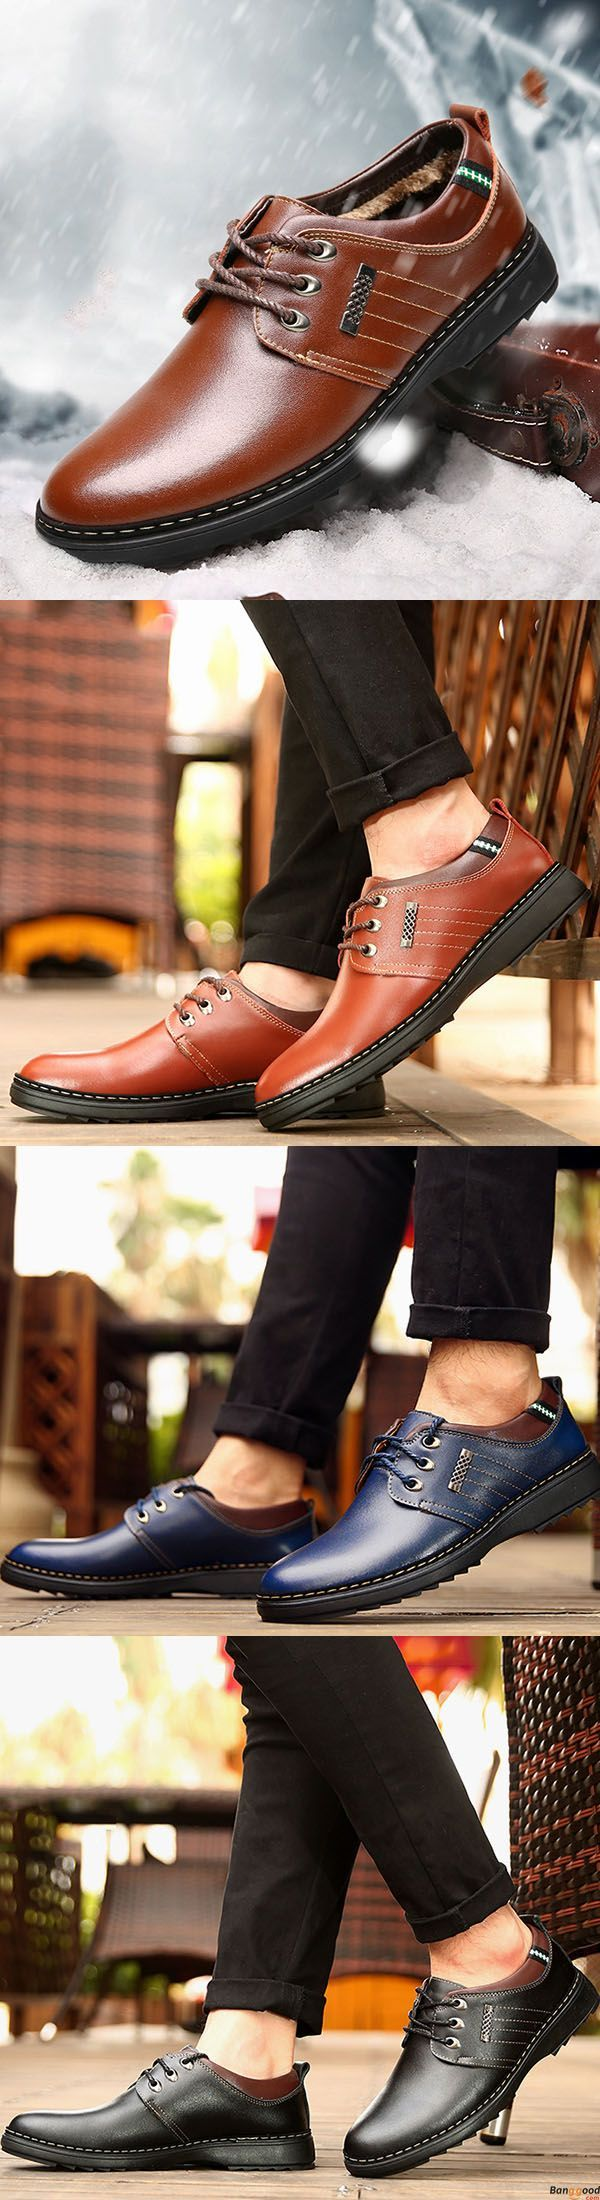 US$42.89 + Free Shipping. Men Casual Business Soft Comfy Warm Genuine Leather Lace Up Oxfords Shoes. Business style. Comfy and warm. Shop at banggood with super affordable price.